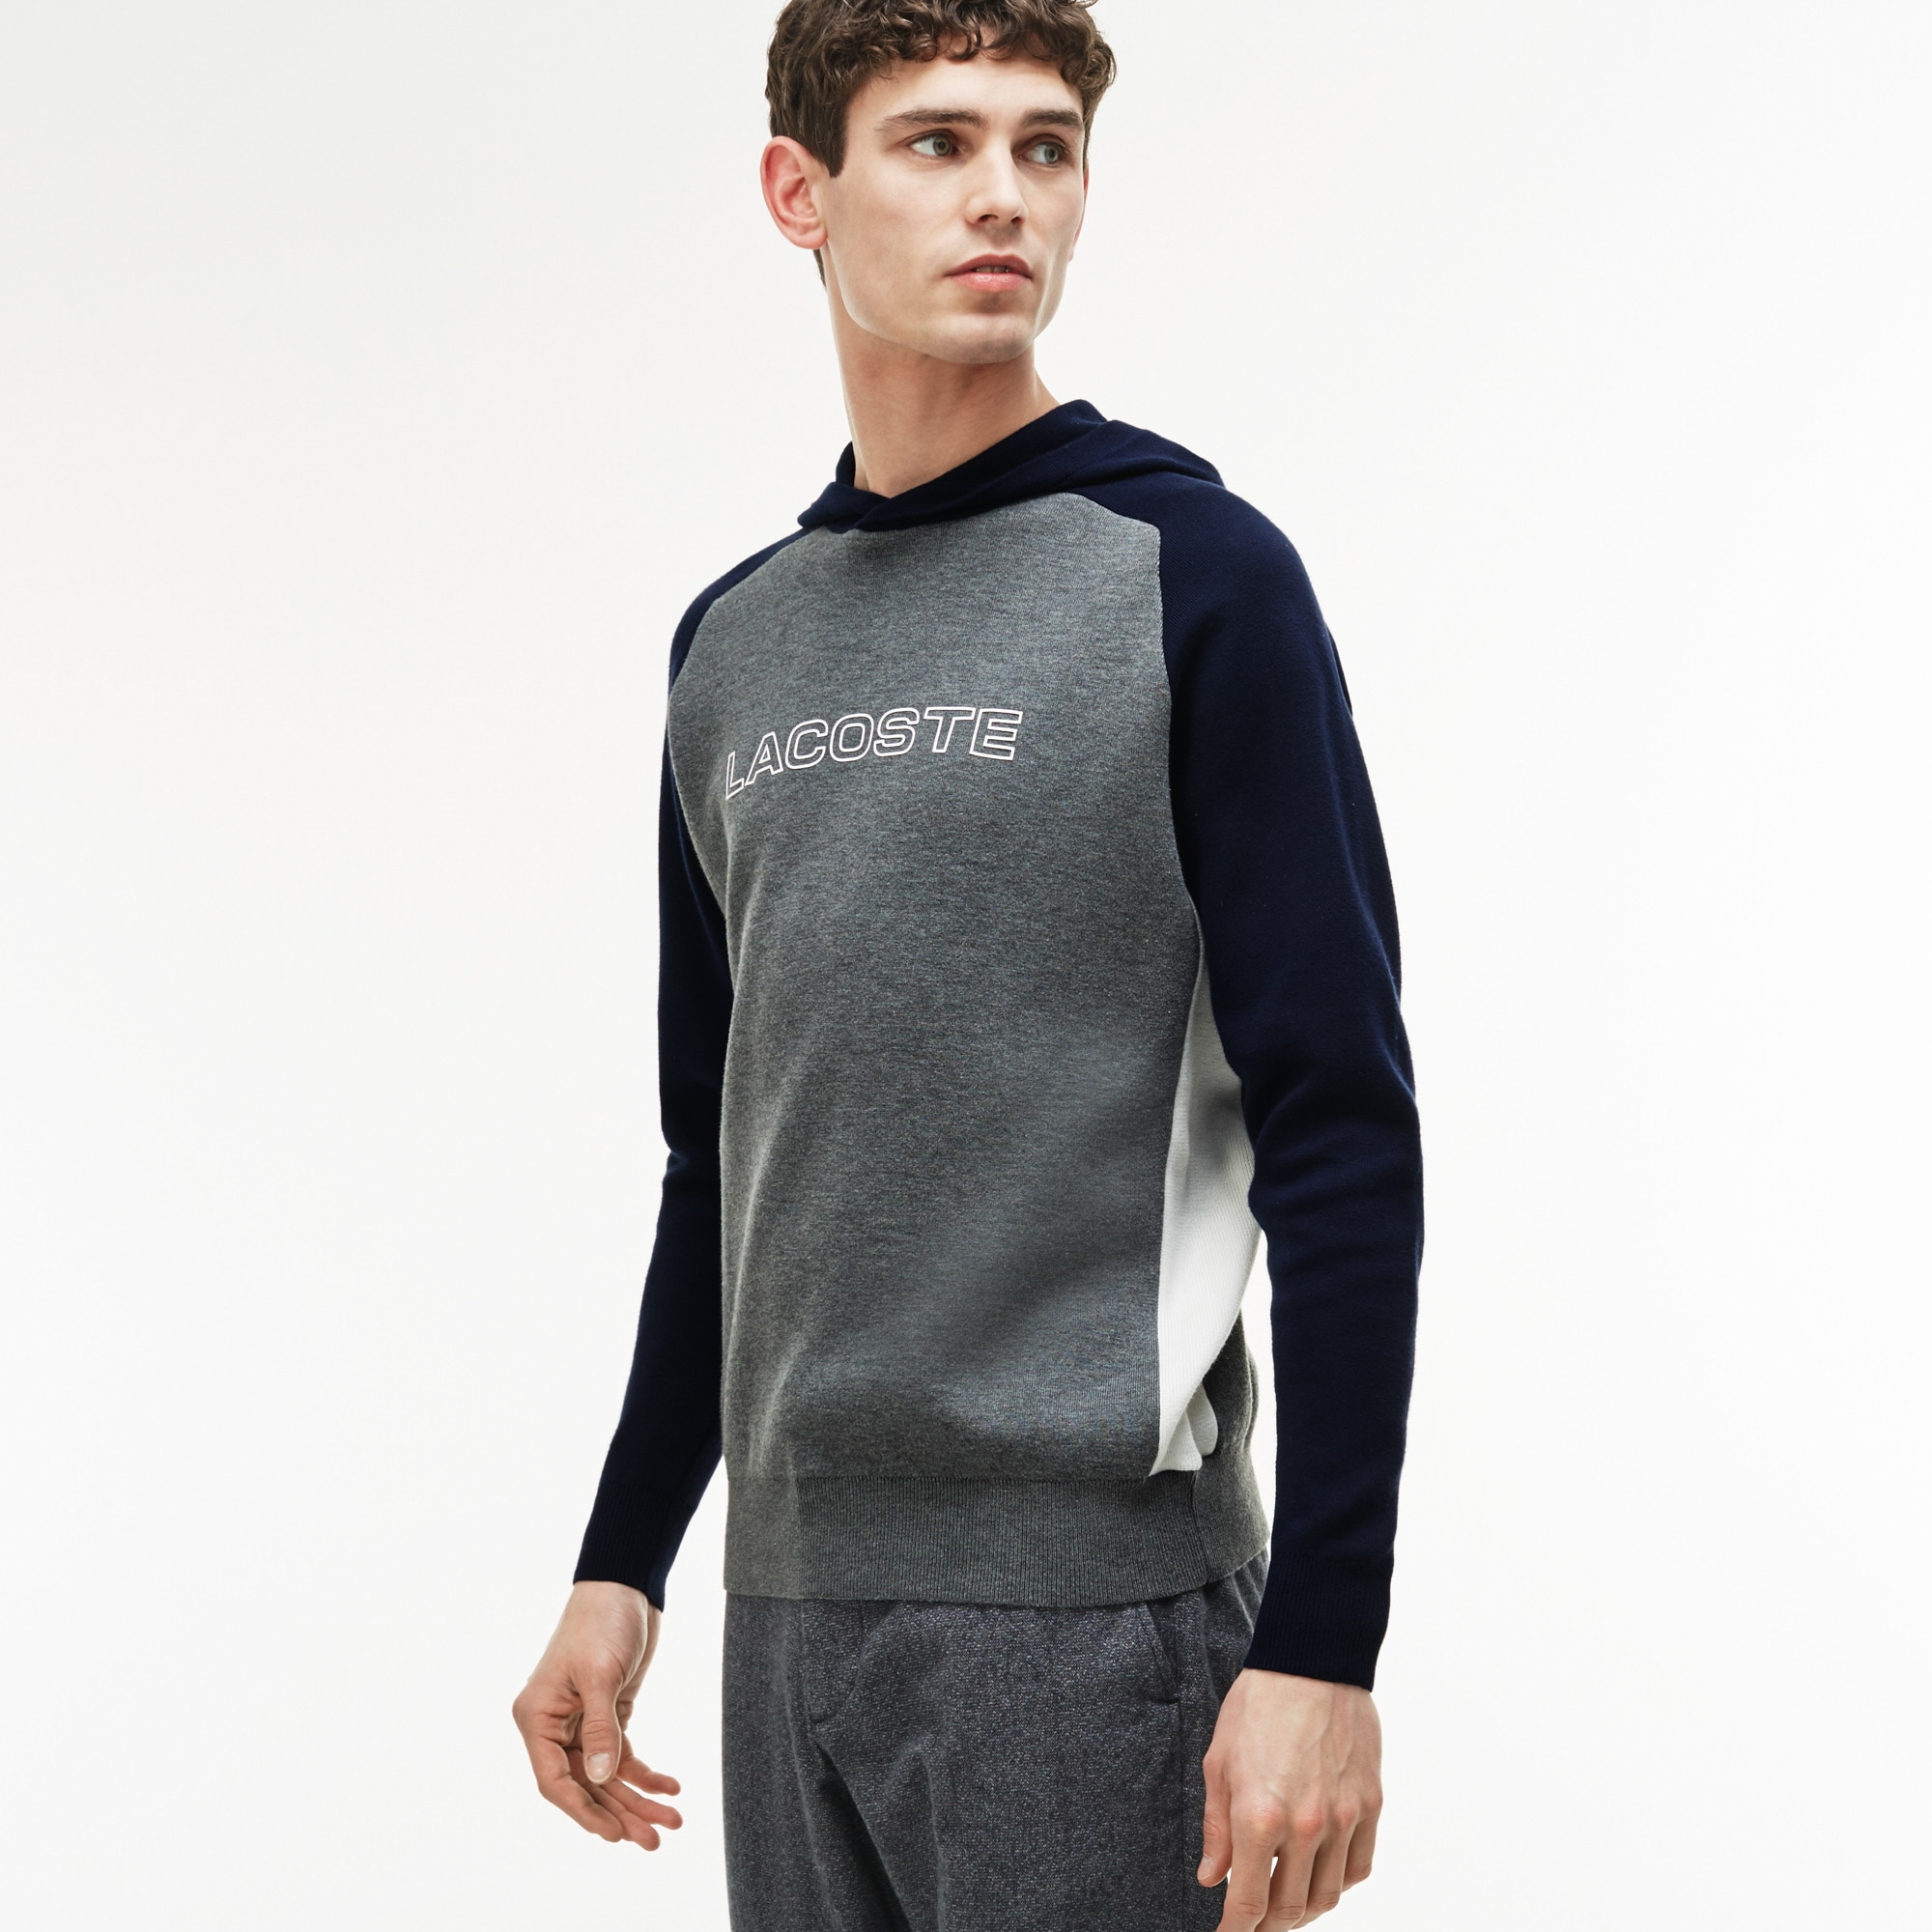 Men's Hooded Sweatshirt With Rubber Lacoste Print